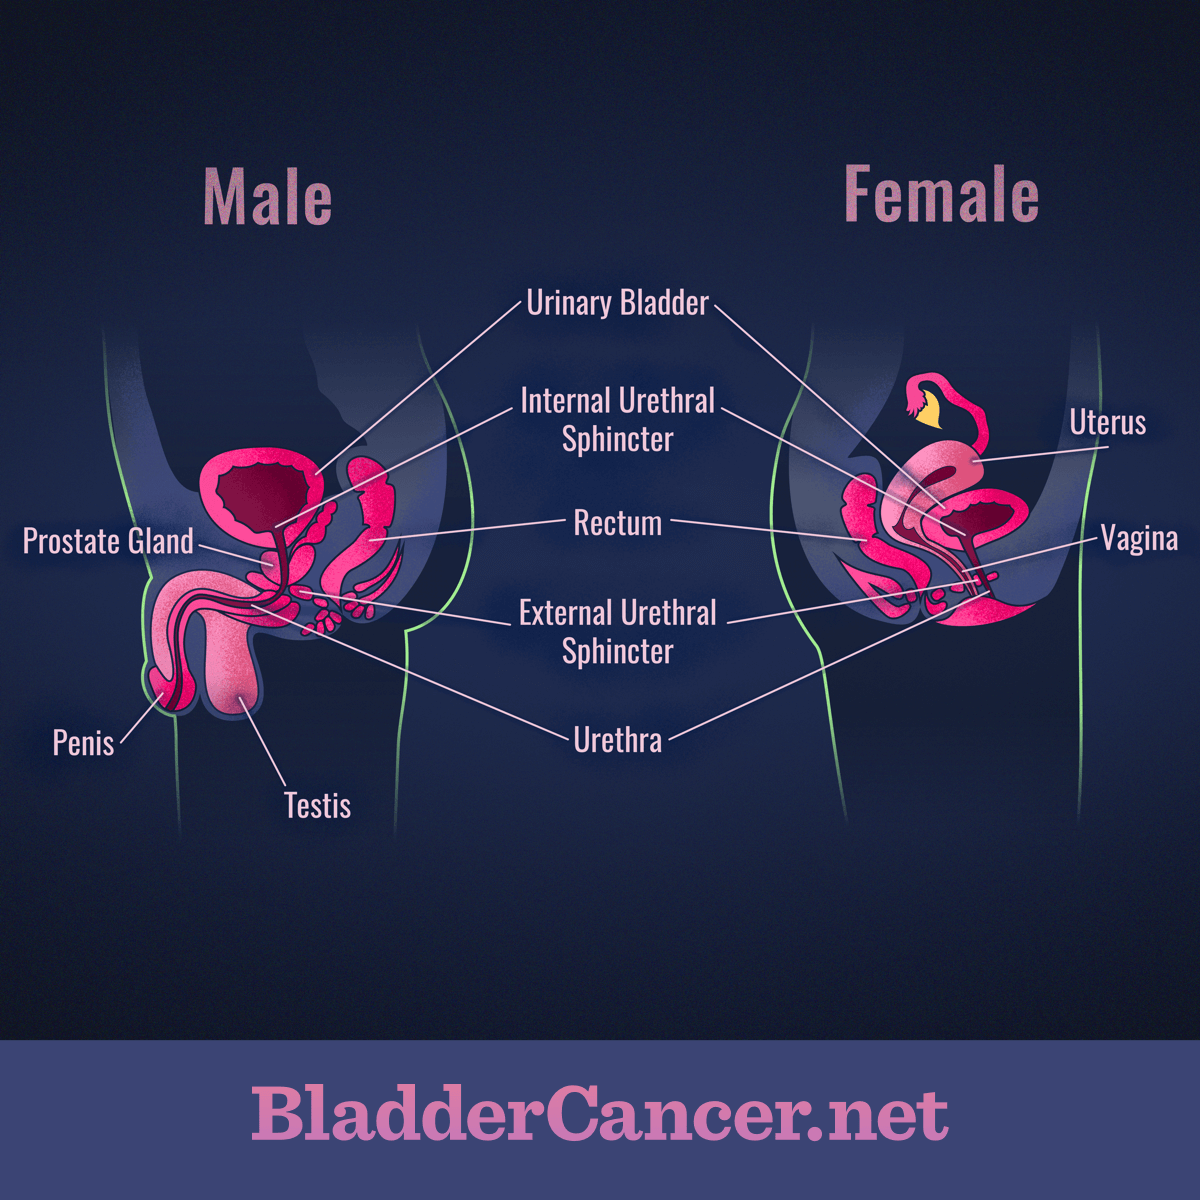 Anatomy Of The Bladder And Urinary Tract